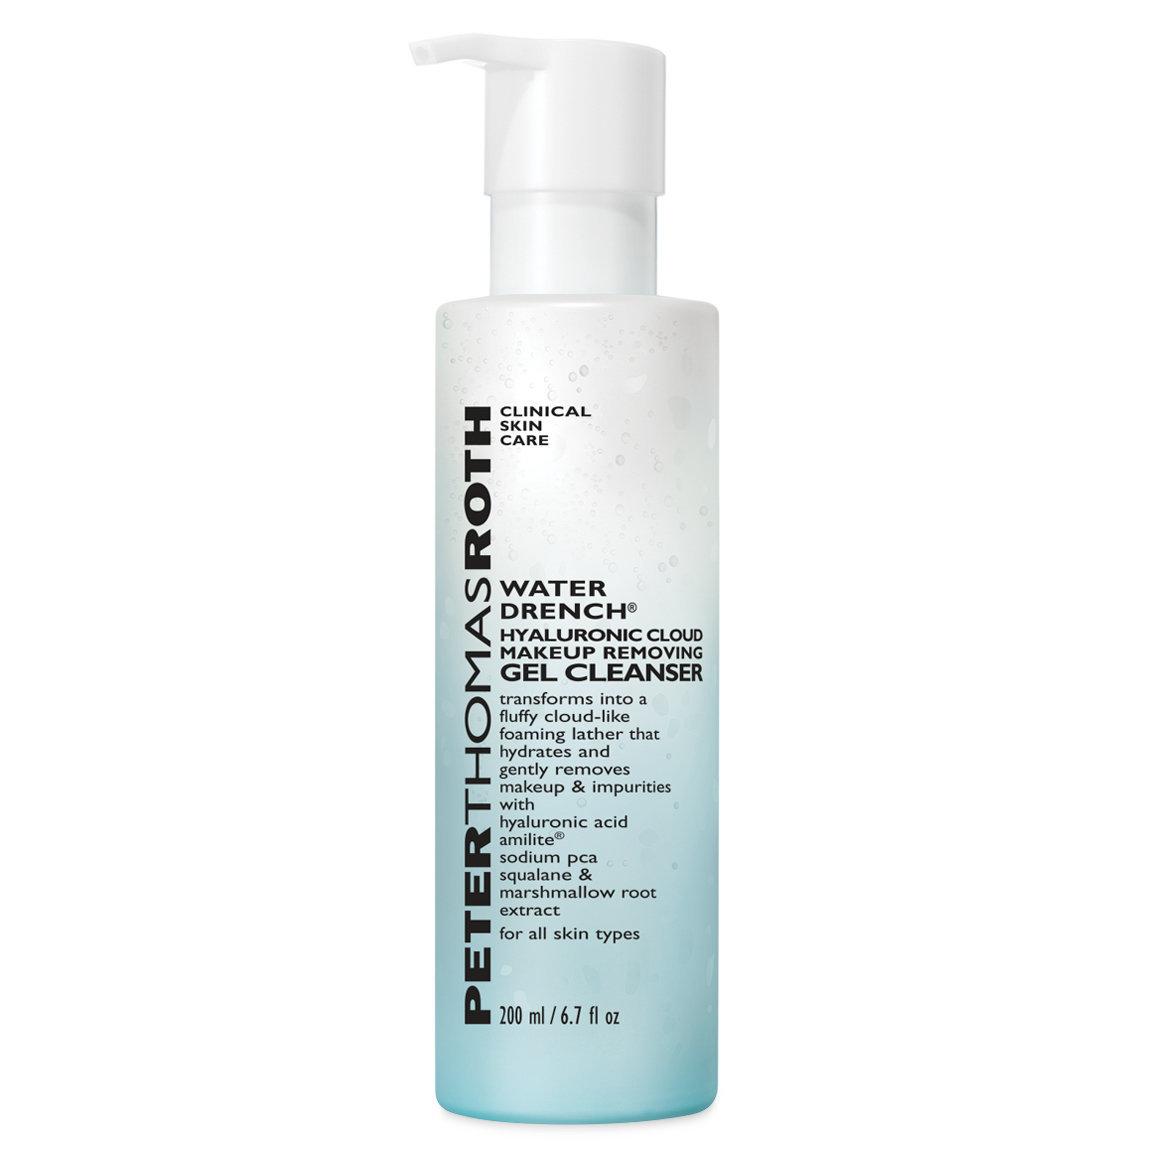 Peter Thomas Roth Water Drench Hyaluronic Cloud Makeup Removing Gel Cleanser alternative view 1 - product swatch.